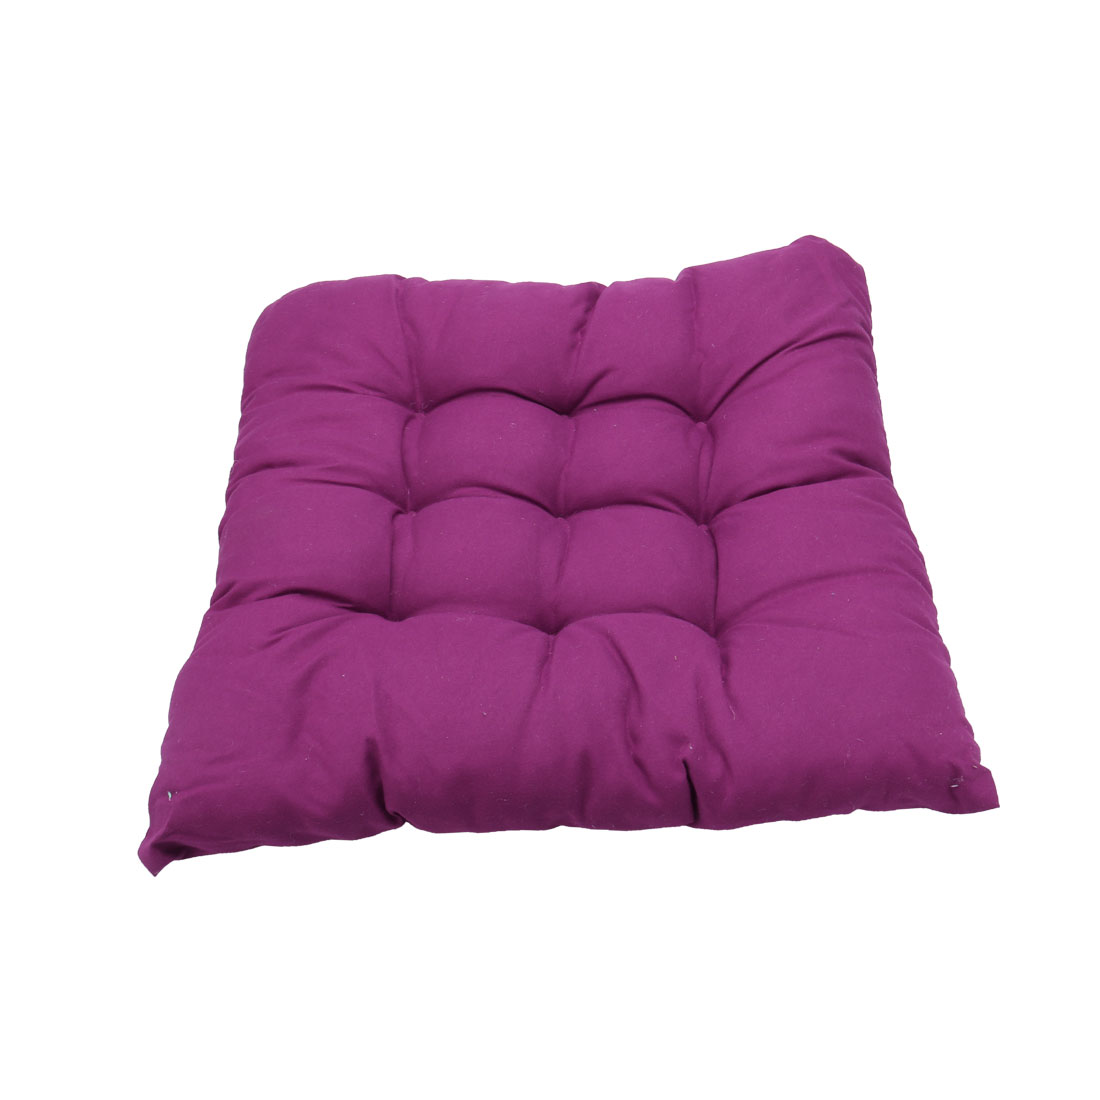 Home Living Room Decor Cotton Blends Strap Design Thickened Chair Cushion Pad Purple